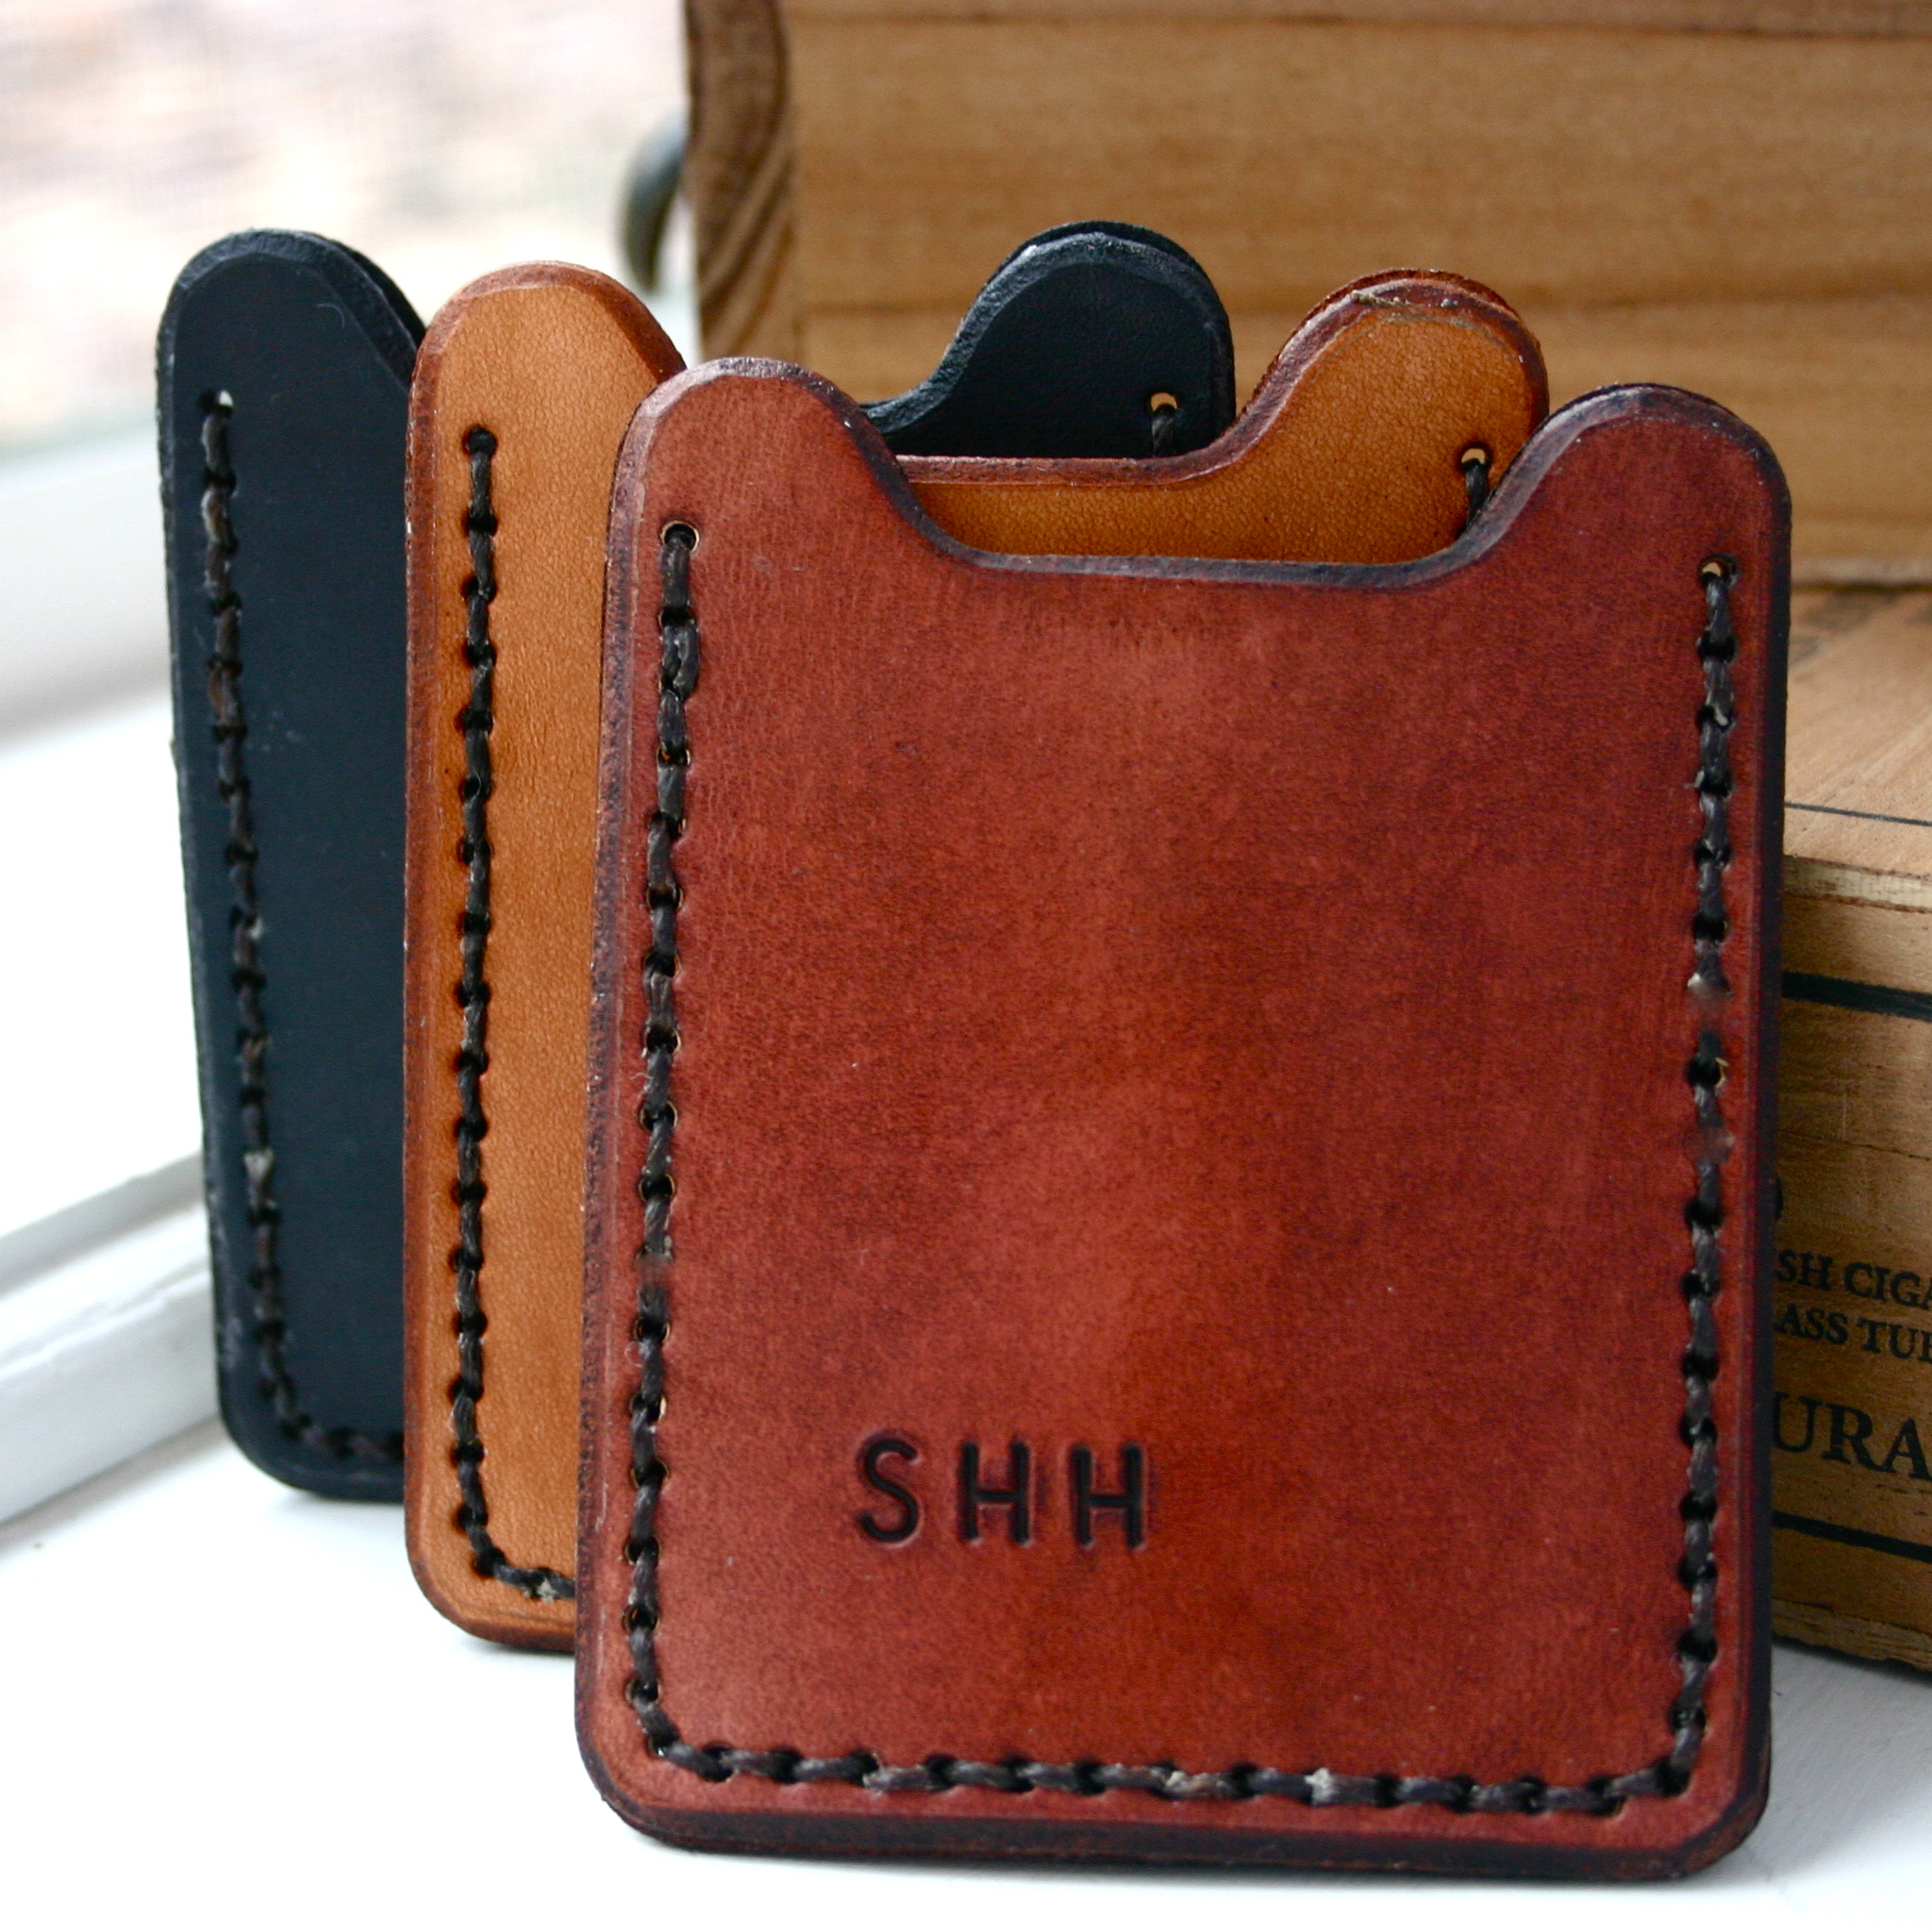 Monogrammed wallet with money clip